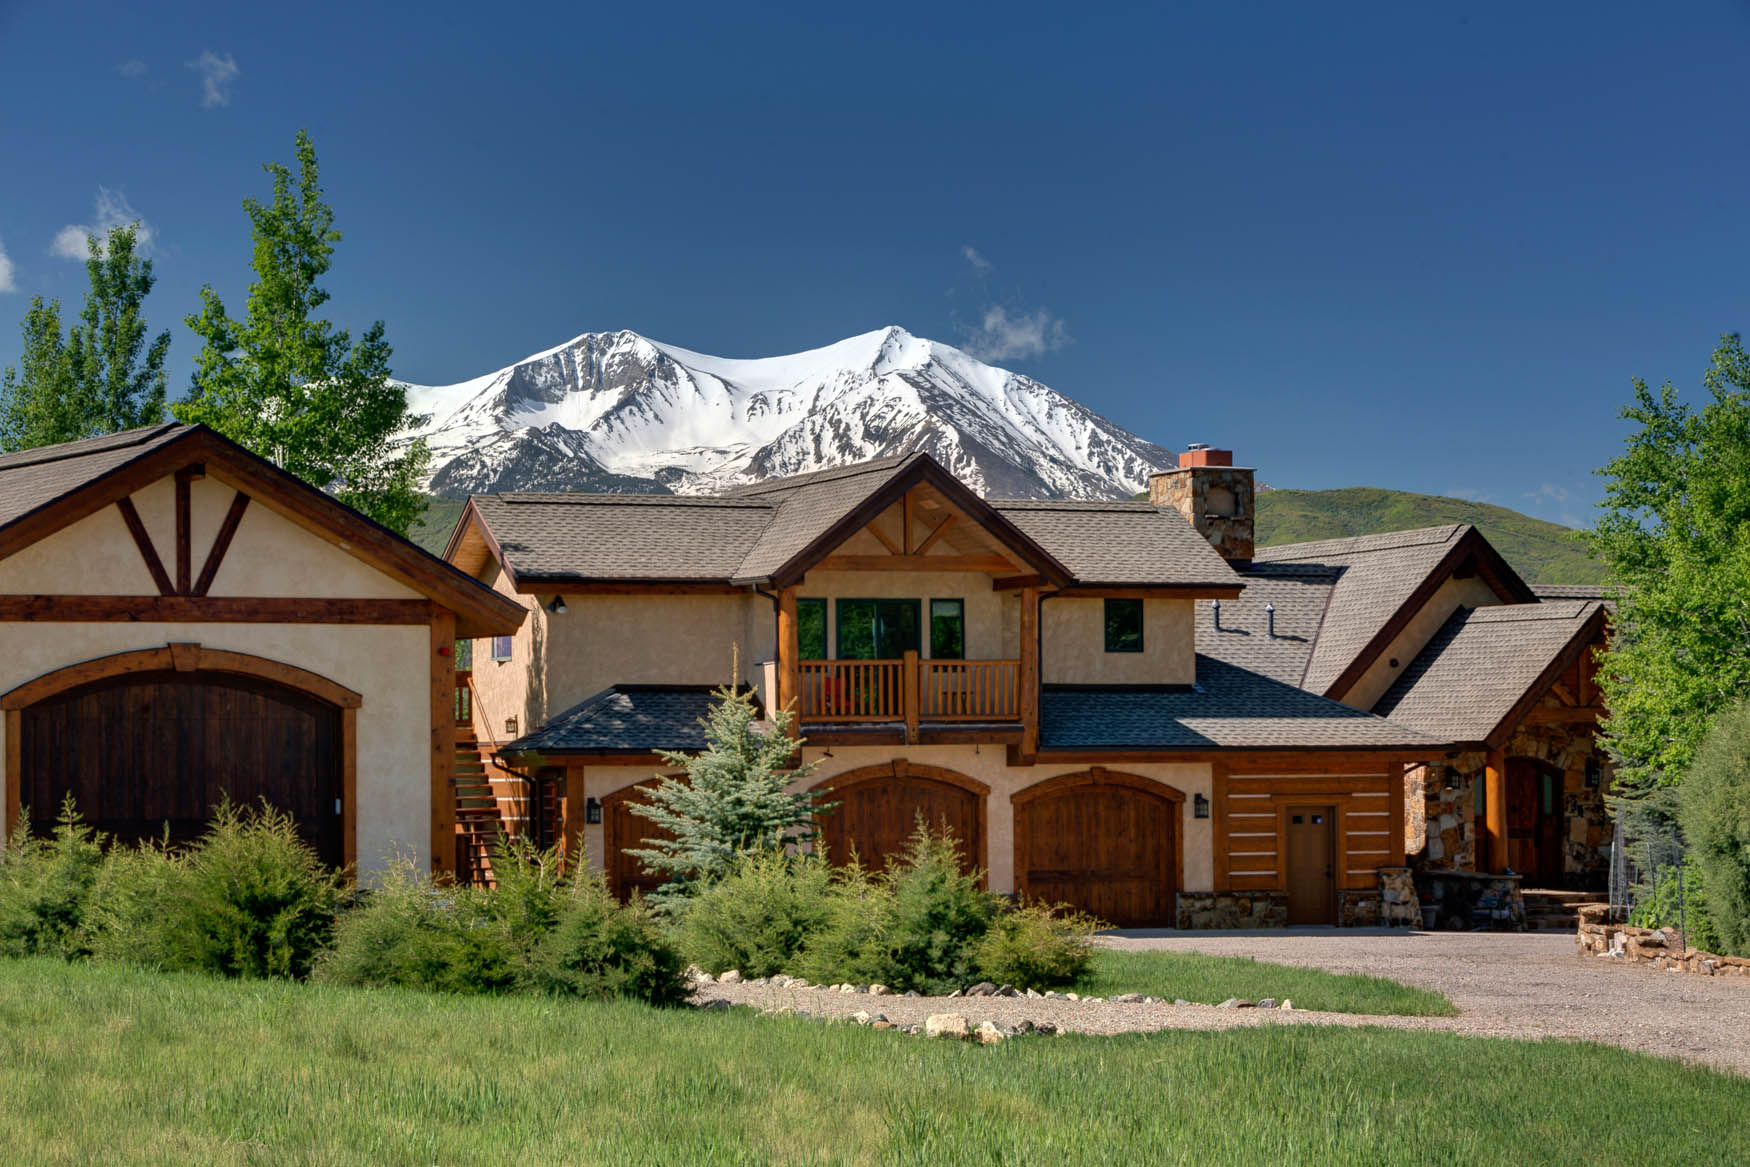 Single Family Home for Sale at Traditional. Tranquil. Treasure. 435 Fox Run Drive Carbondale, Colorado 81623 United States